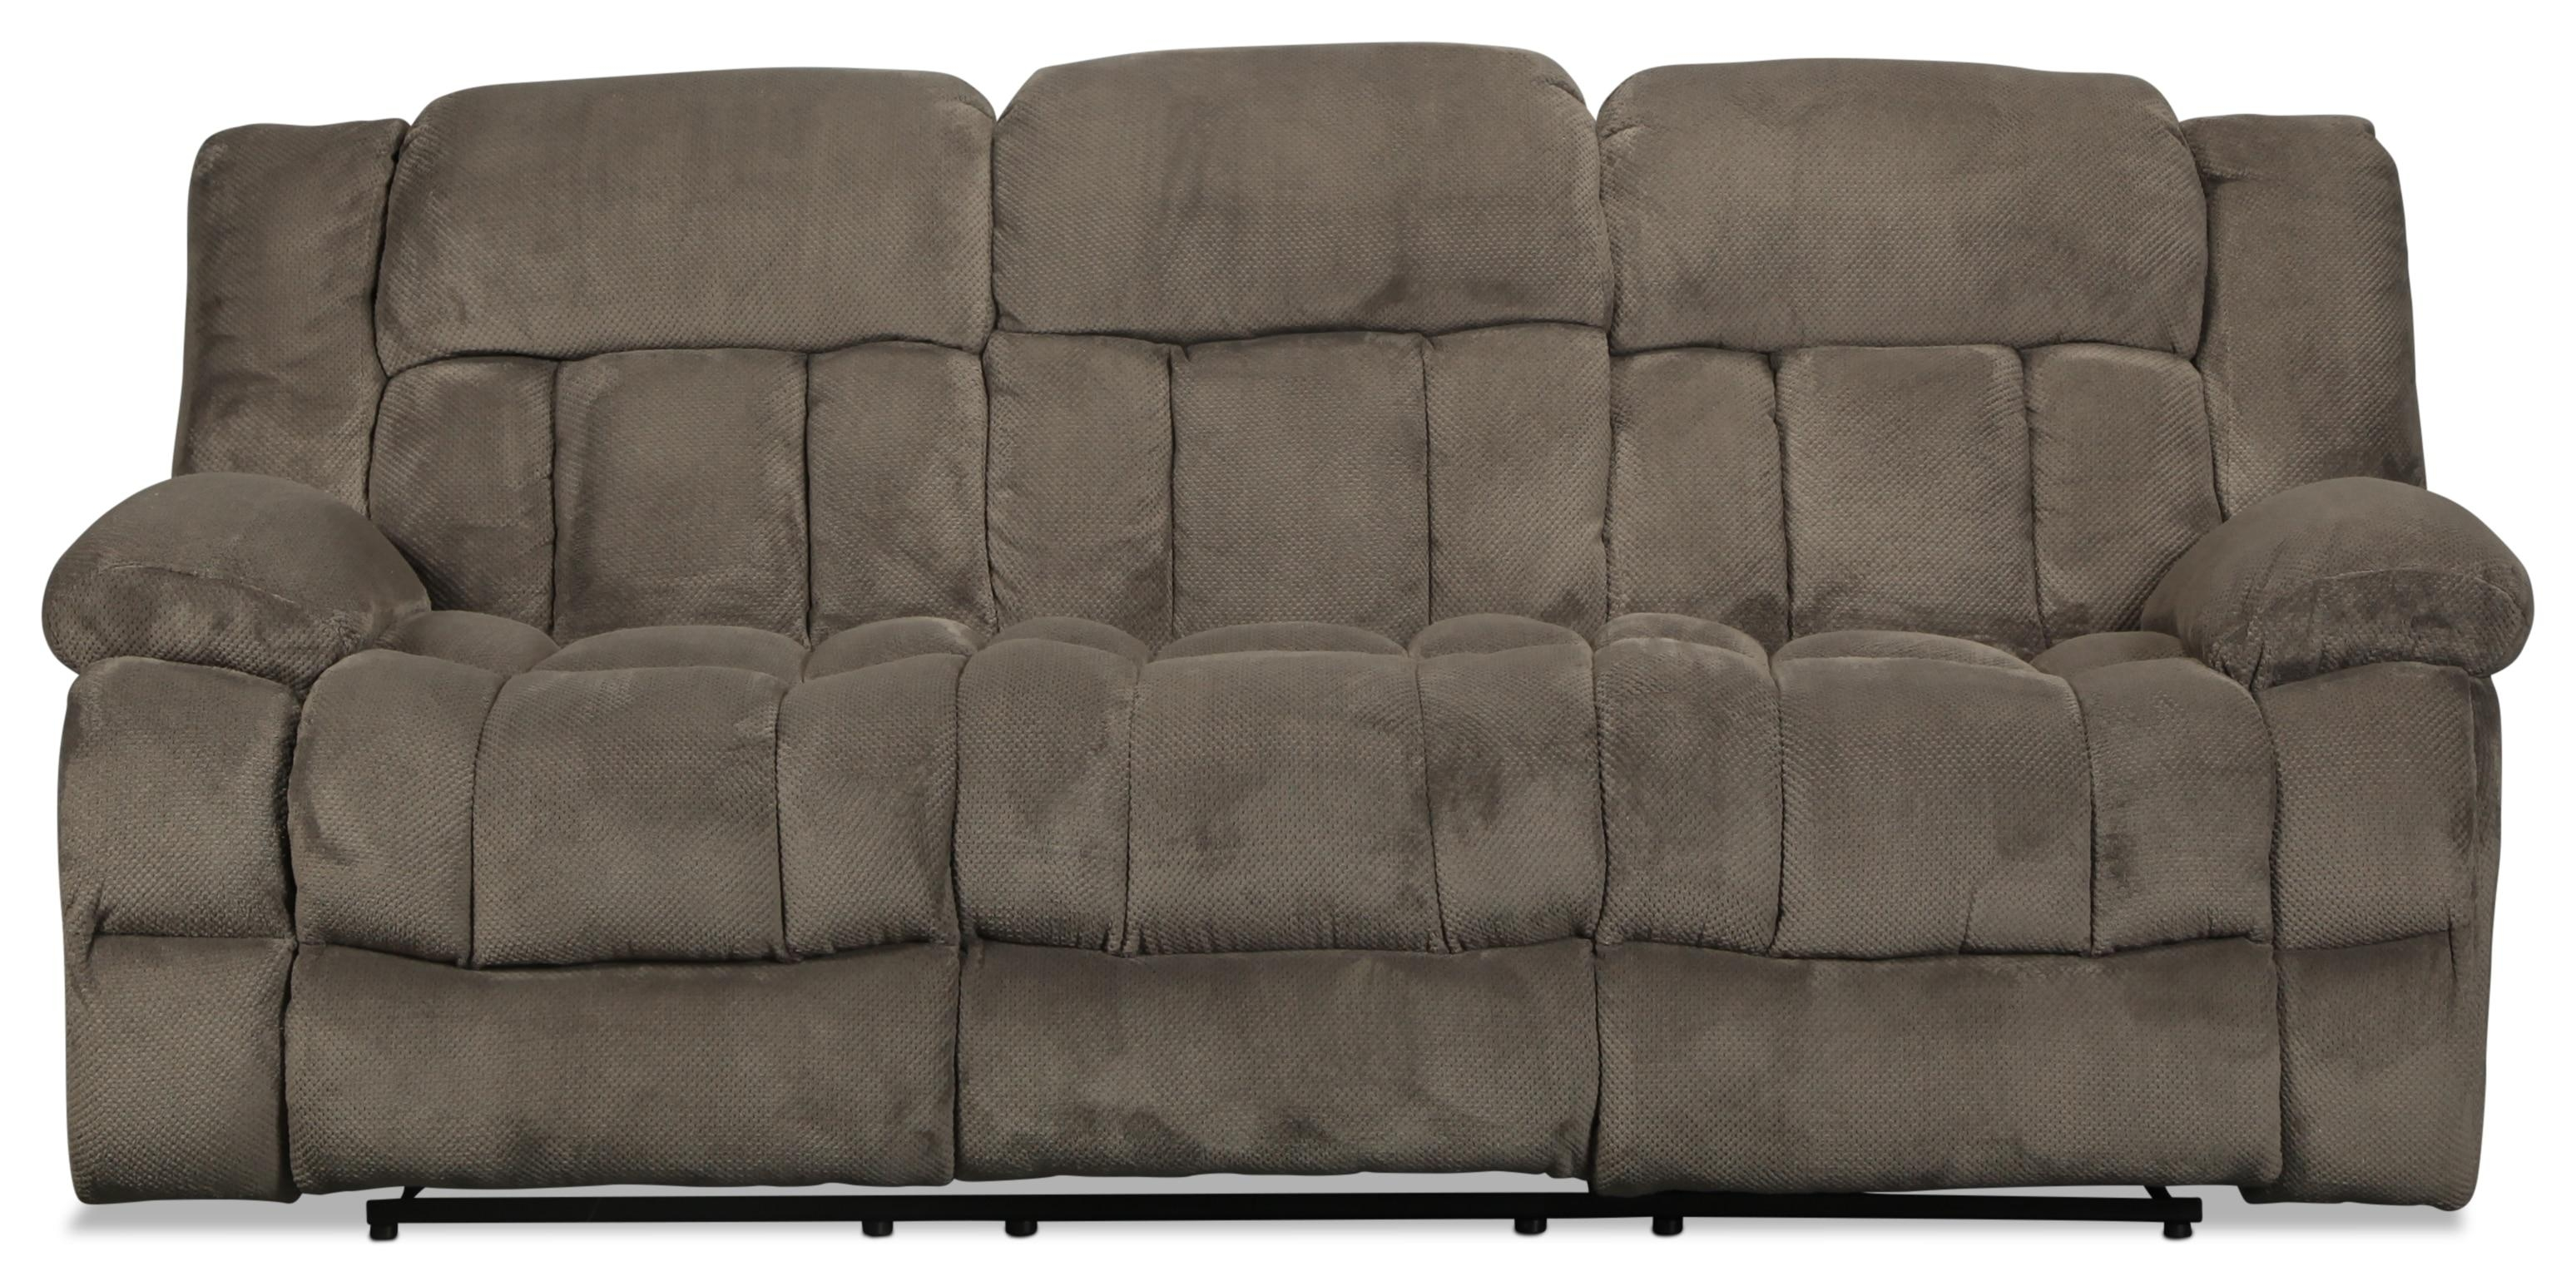 Sofas | Levin Furniture Regarding Overstuffed Sofas And Chairs (Image 18 of 20)